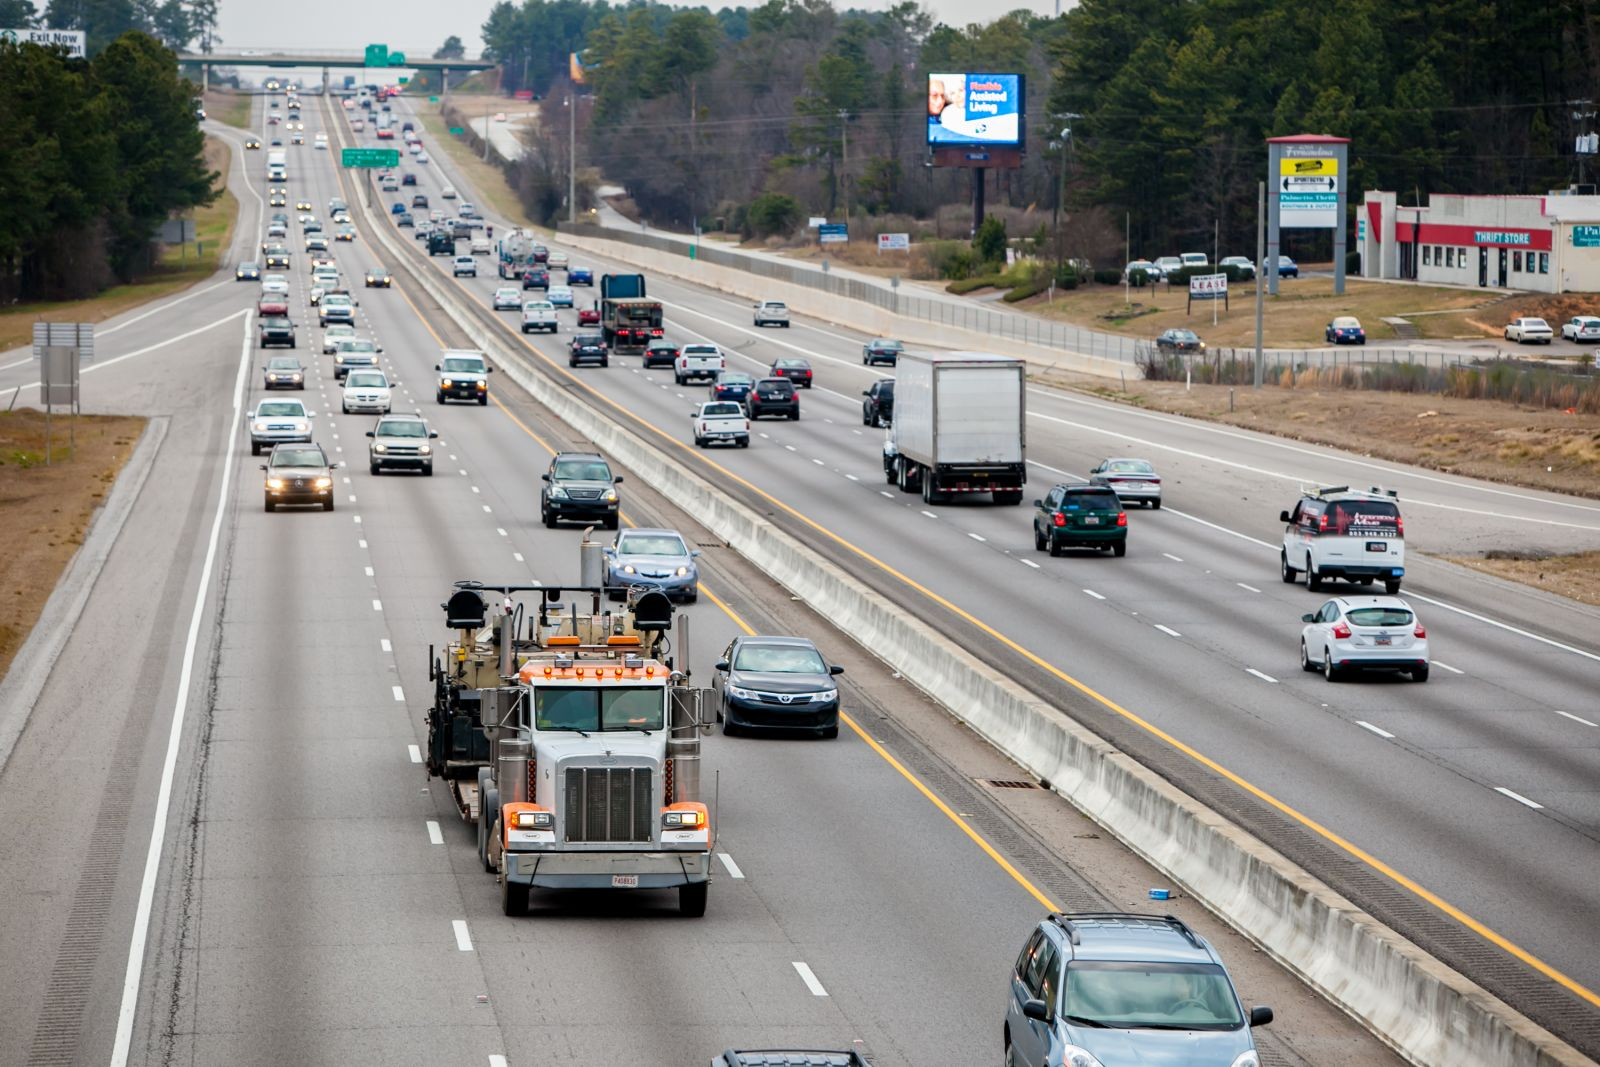 The S.C. Trucking Association says the U.S. needs 50,000 drivers now to meet the current demand for truck drivers. (Photo/File)